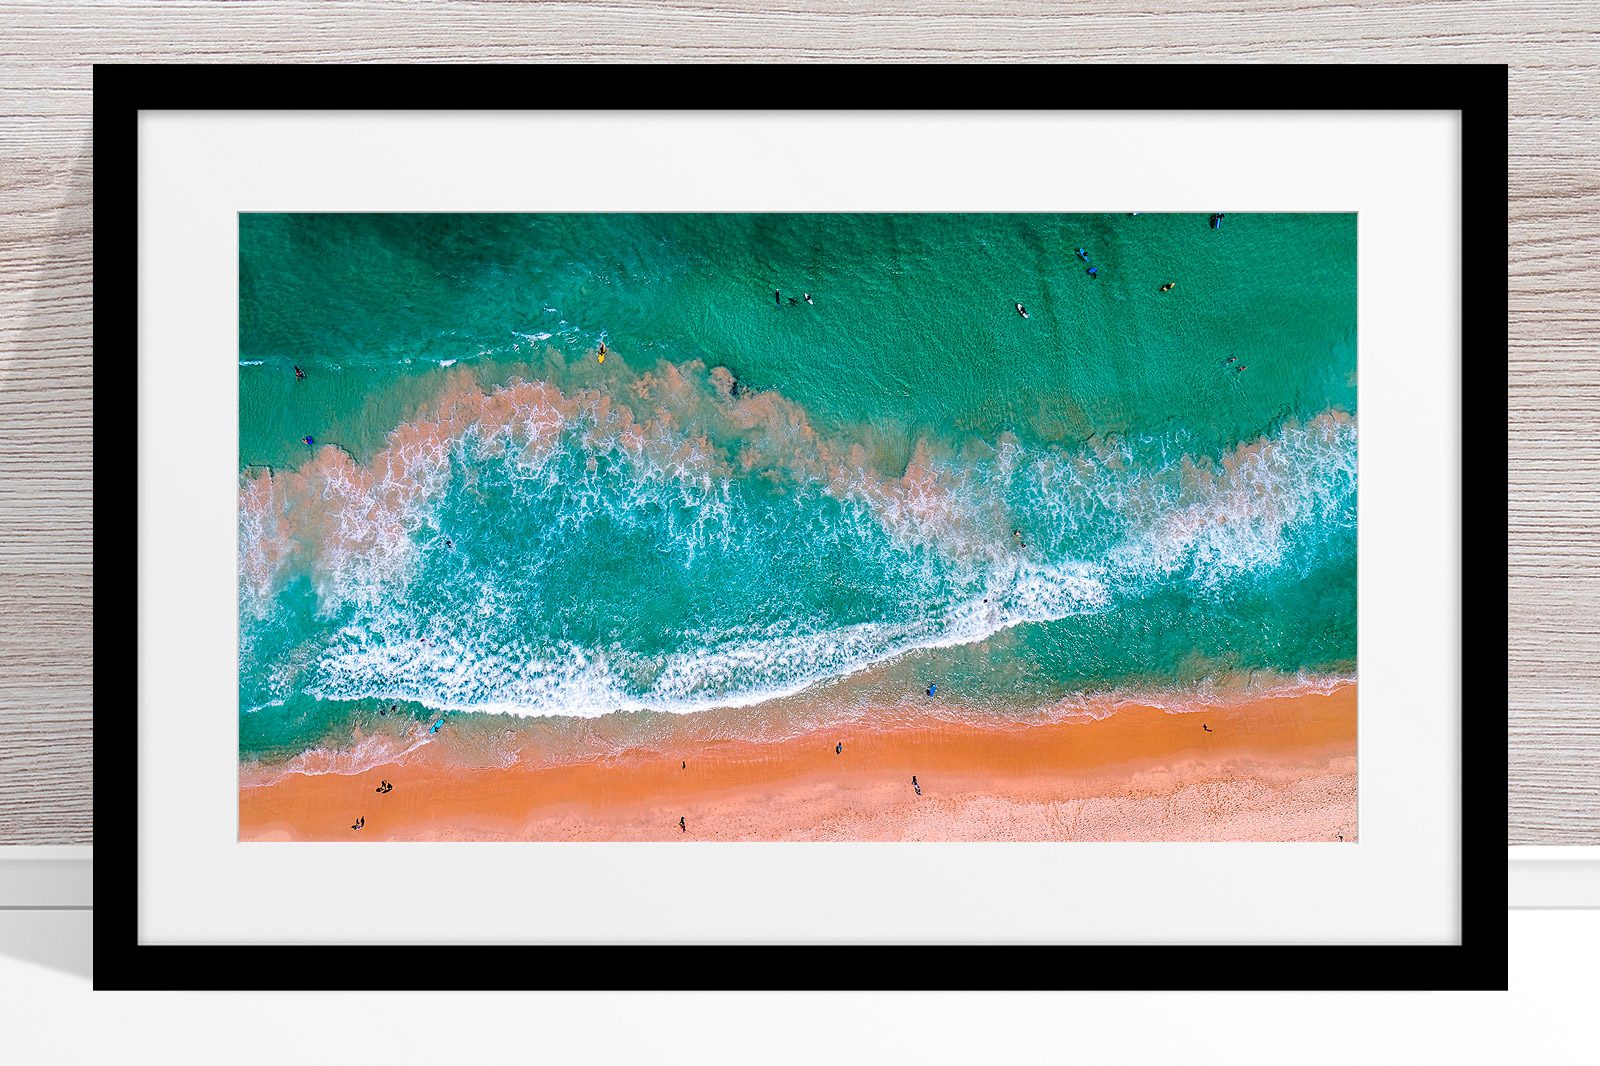 001 - Jason Mazur - 'Scarborough Beach Aerial' Black Frame